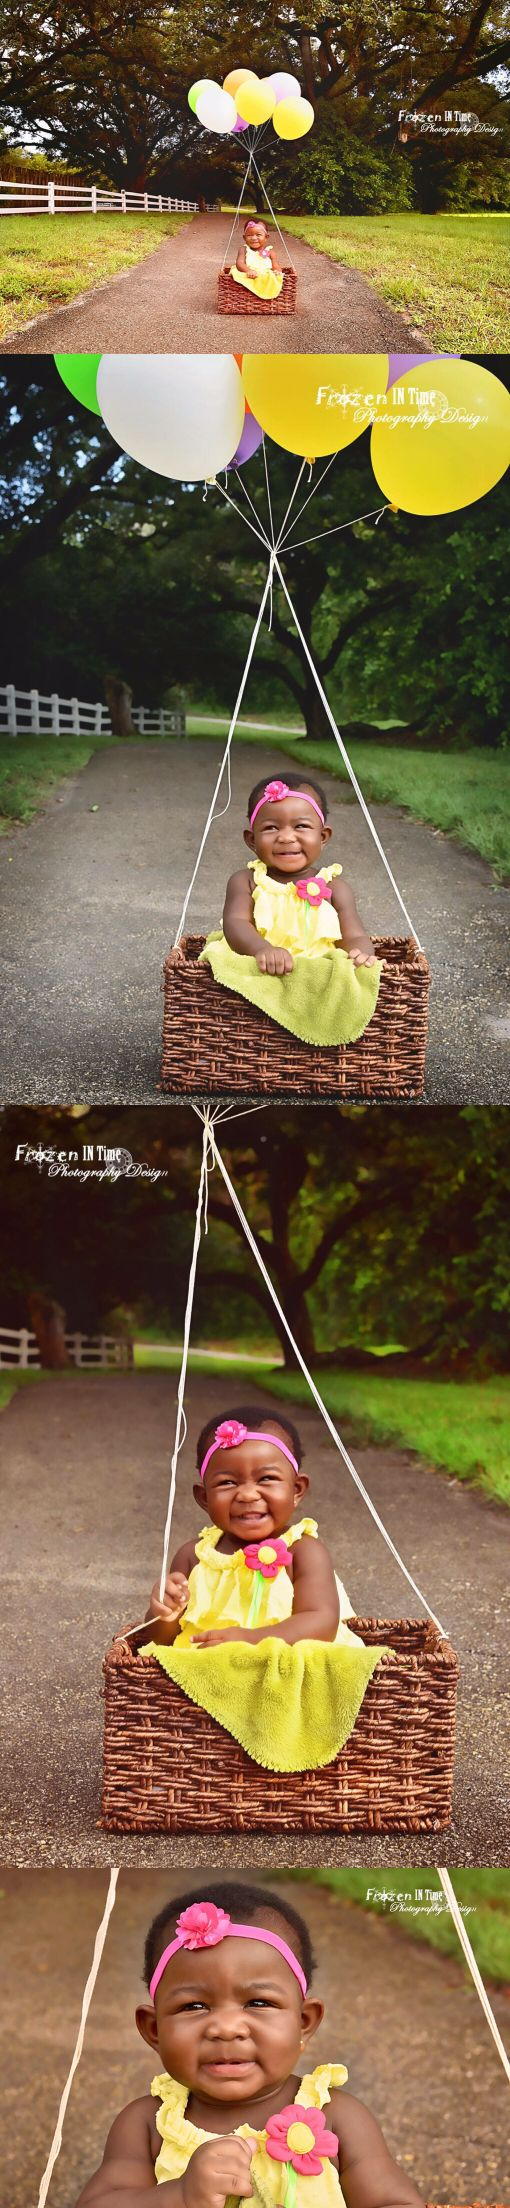 6 month old photoshoot, photo session, outdoor photography, balloon, hot air balloon, balloons, woodland, girl, kid, child, toddler, photo ideas, park, six months